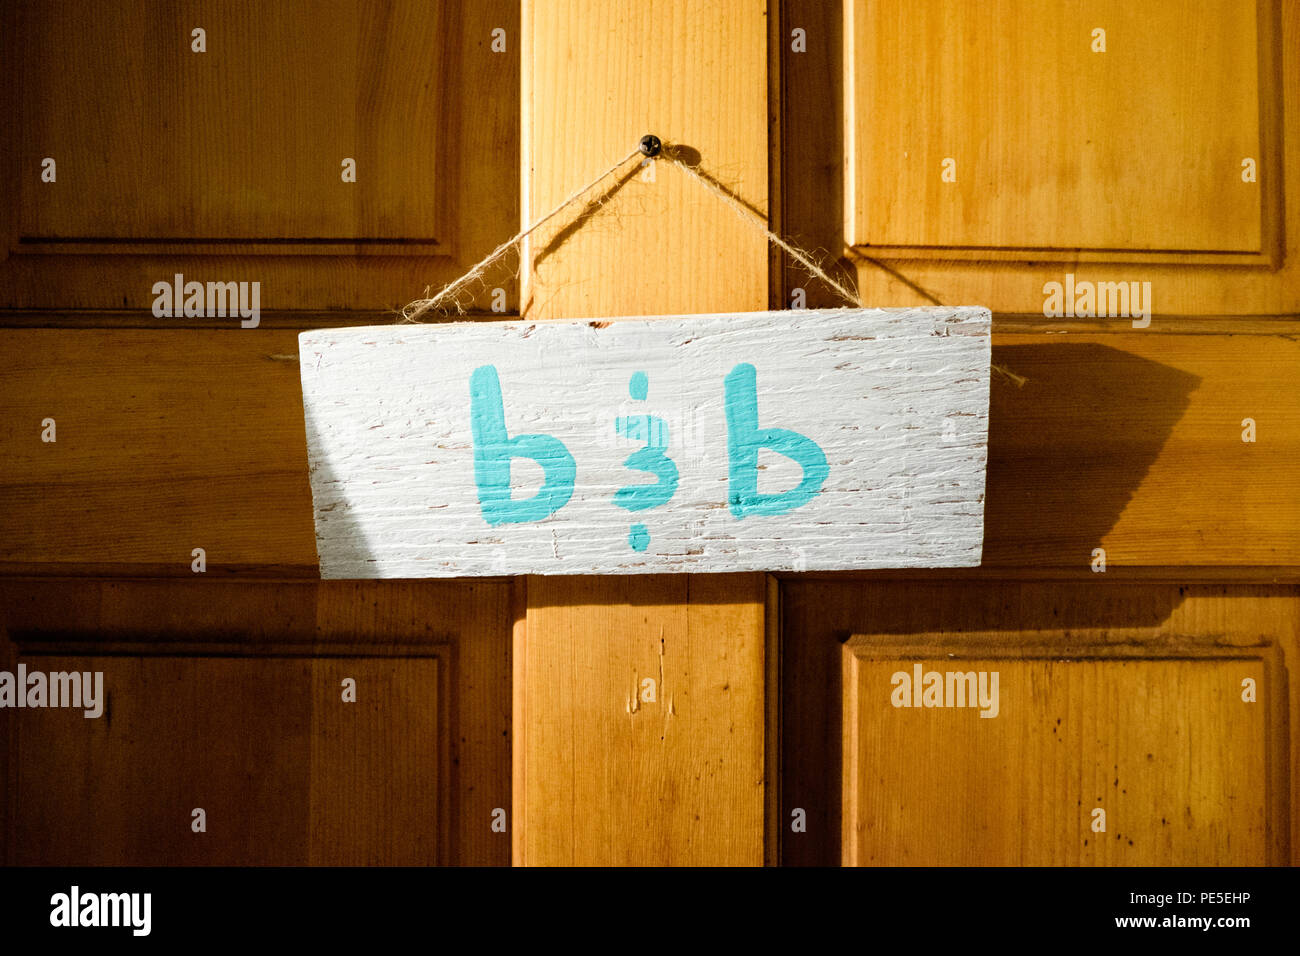 A homemade b&b sign on the door of an airbnb accommodation in Burlington, VT, USA. - Stock Image